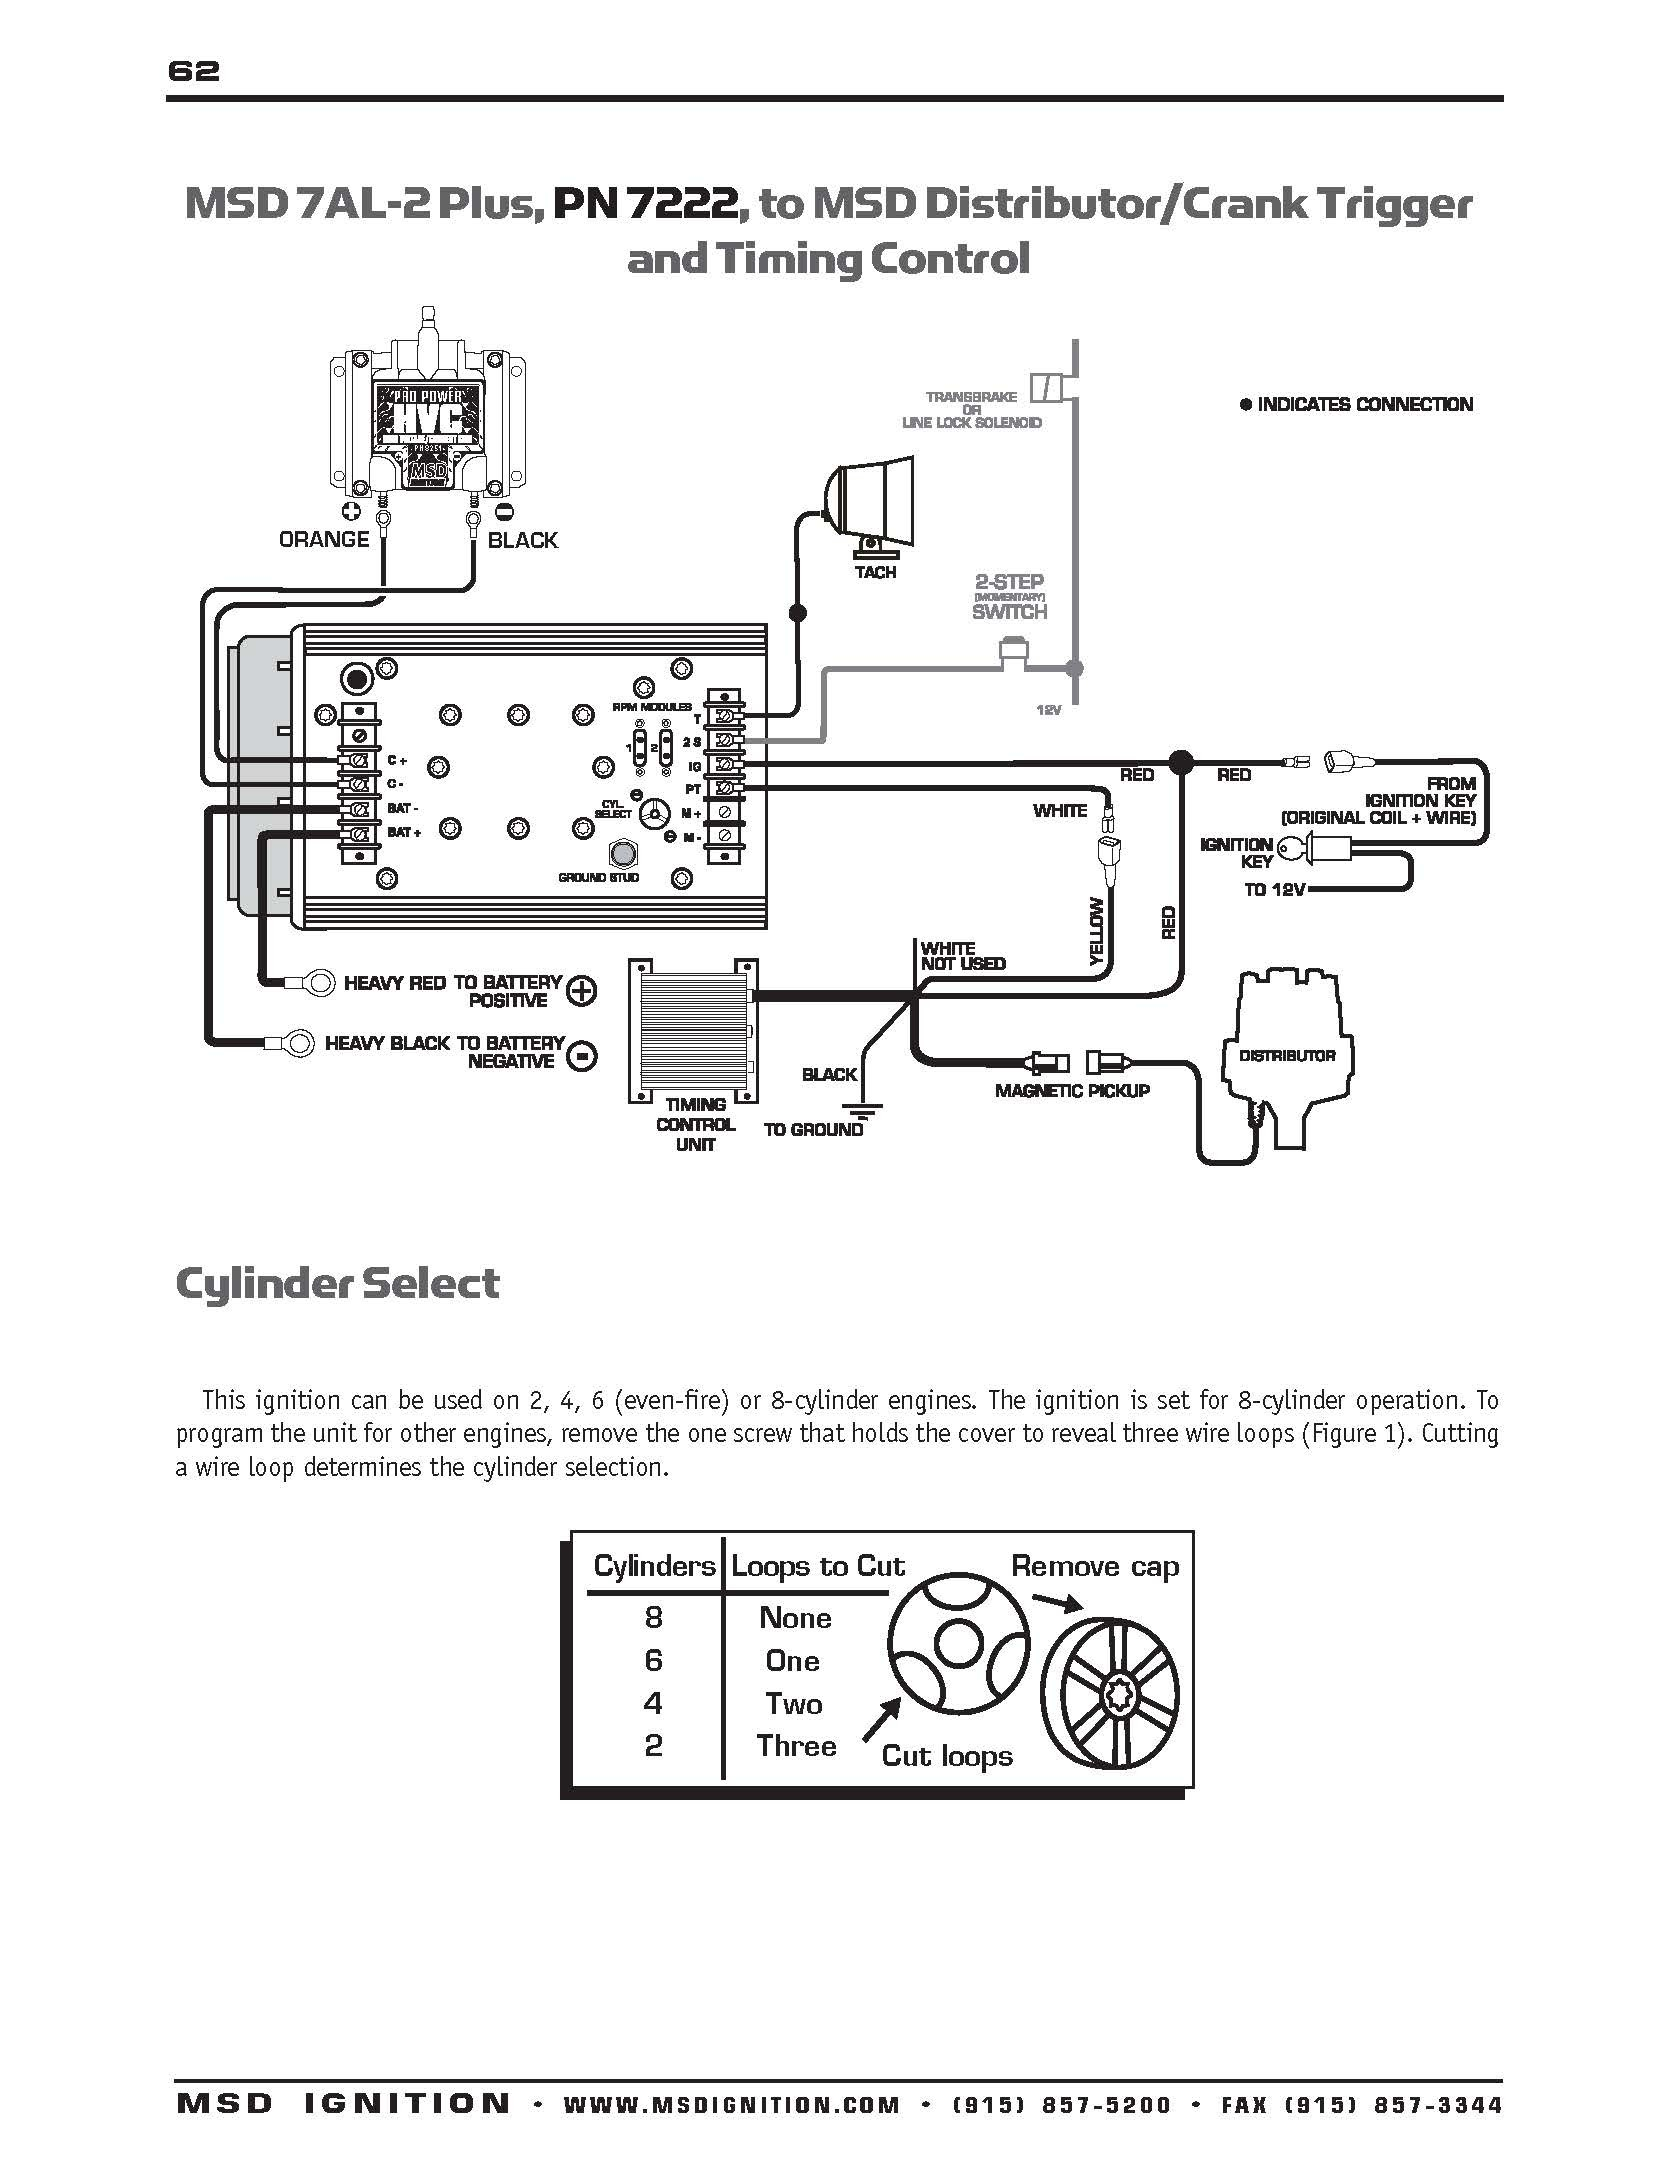 Hei Distributor Wiring Diagram Wdtn Pn9615 Page 061 Msd Distributor Wiring Diagram Wiring Diagram Of Hei Distributor Wiring Diagram Msd Ignition Wiring Diagrams Throughout 6a Diagram to Distributor